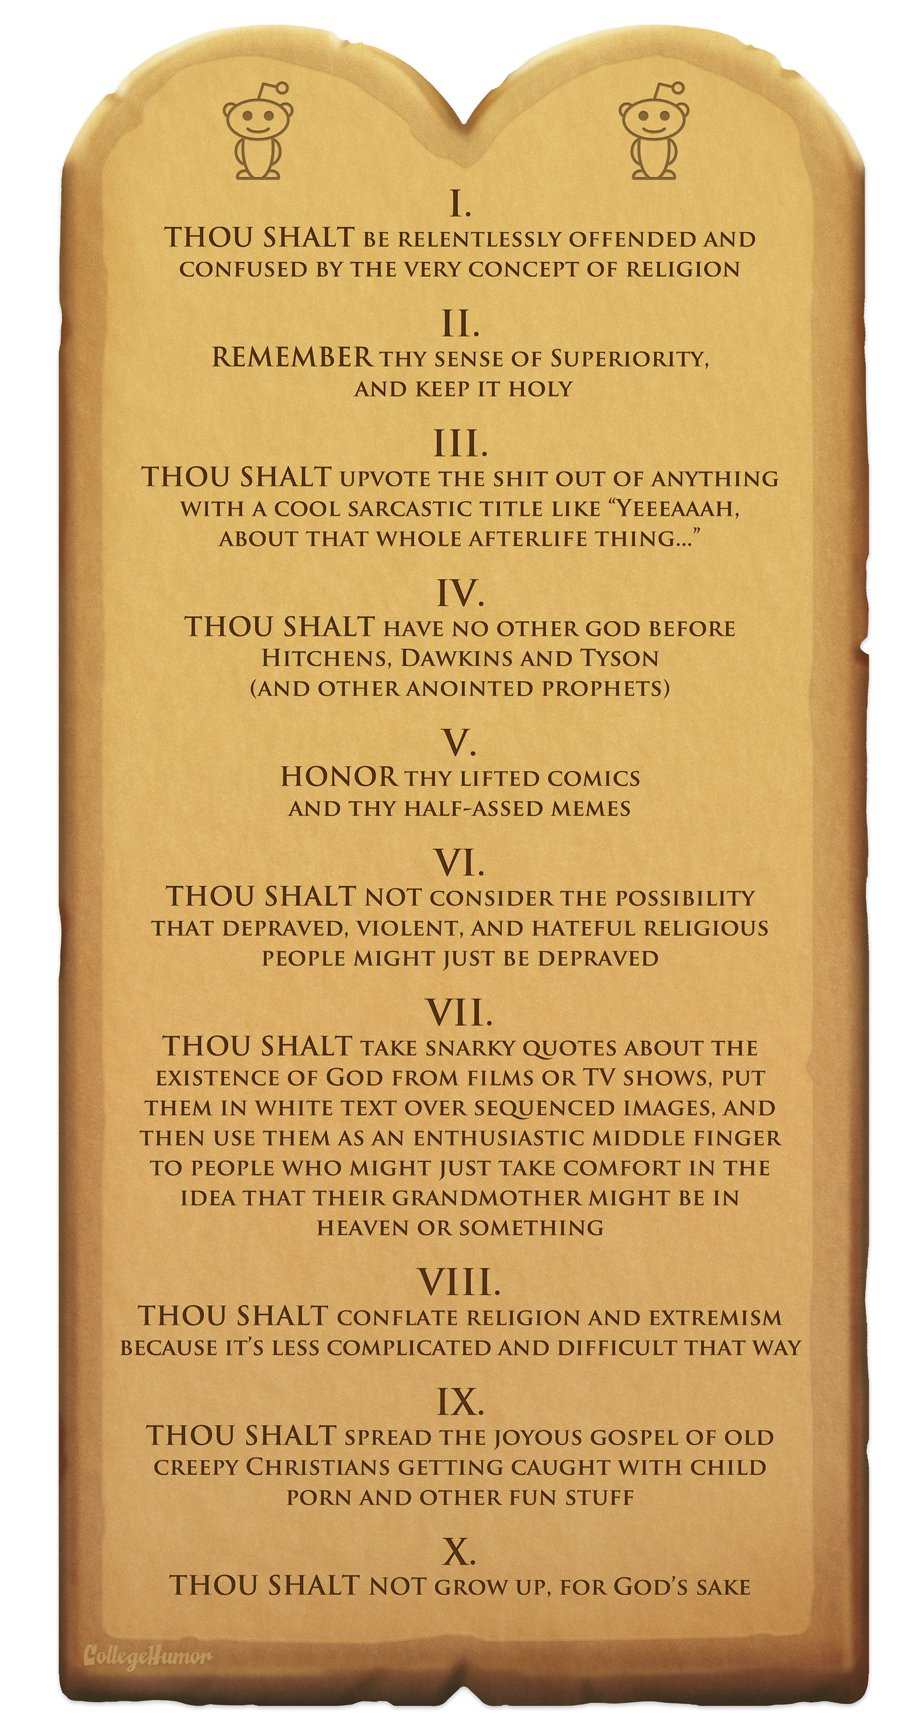 46ae5b481473b7292f7499ddd89a3f31-the-ten-commandments-of-reddits-ratheism